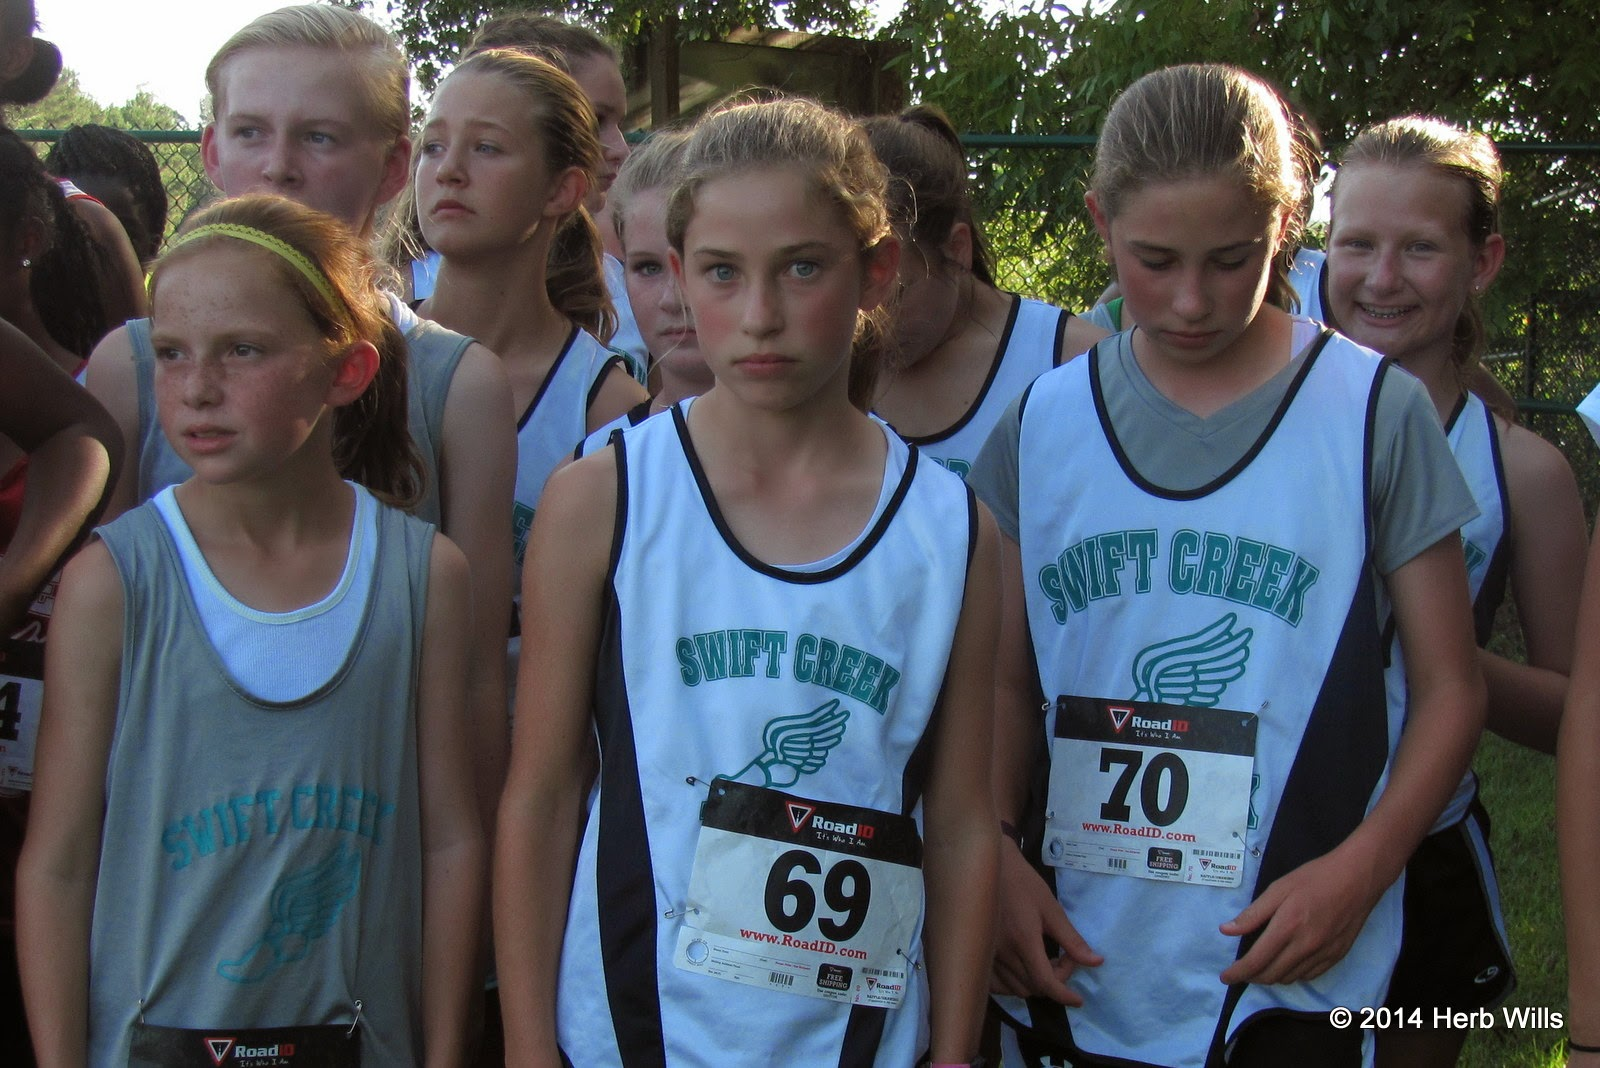 Swift Creek girls' cross-country team